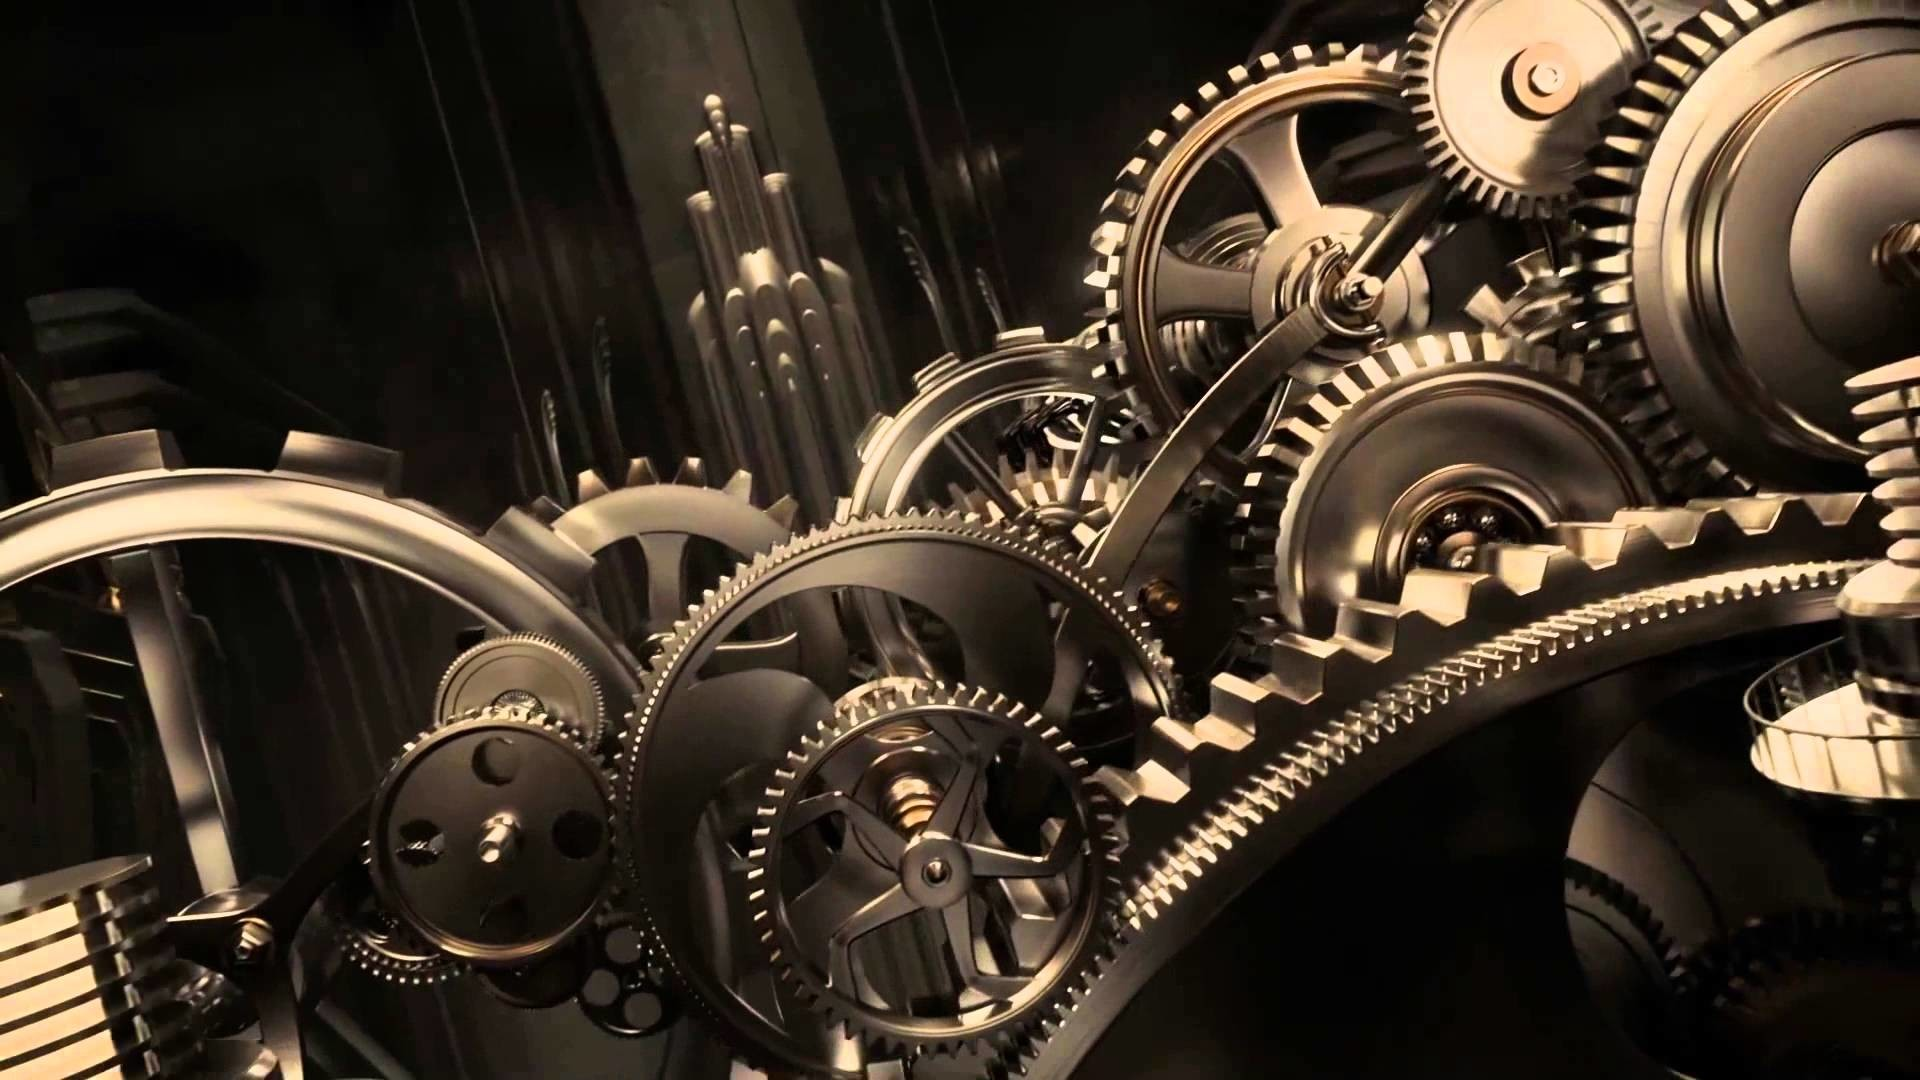 Engineering And Technology Ultra Hd Wallpapers: Mechanical Engineering Wallpapers HD (67+ Images